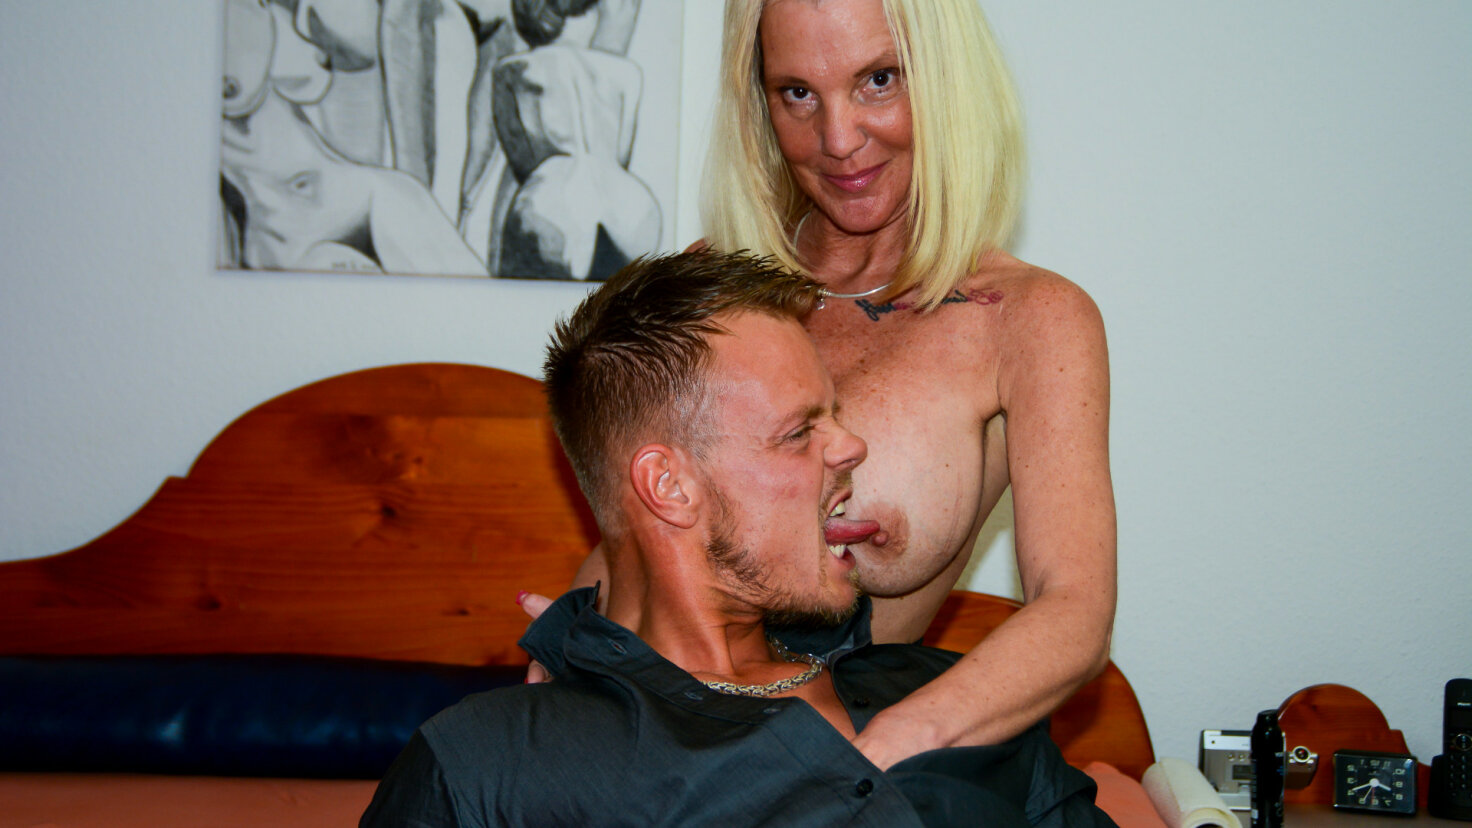 Hot German amateur sex with big titted mature blondie